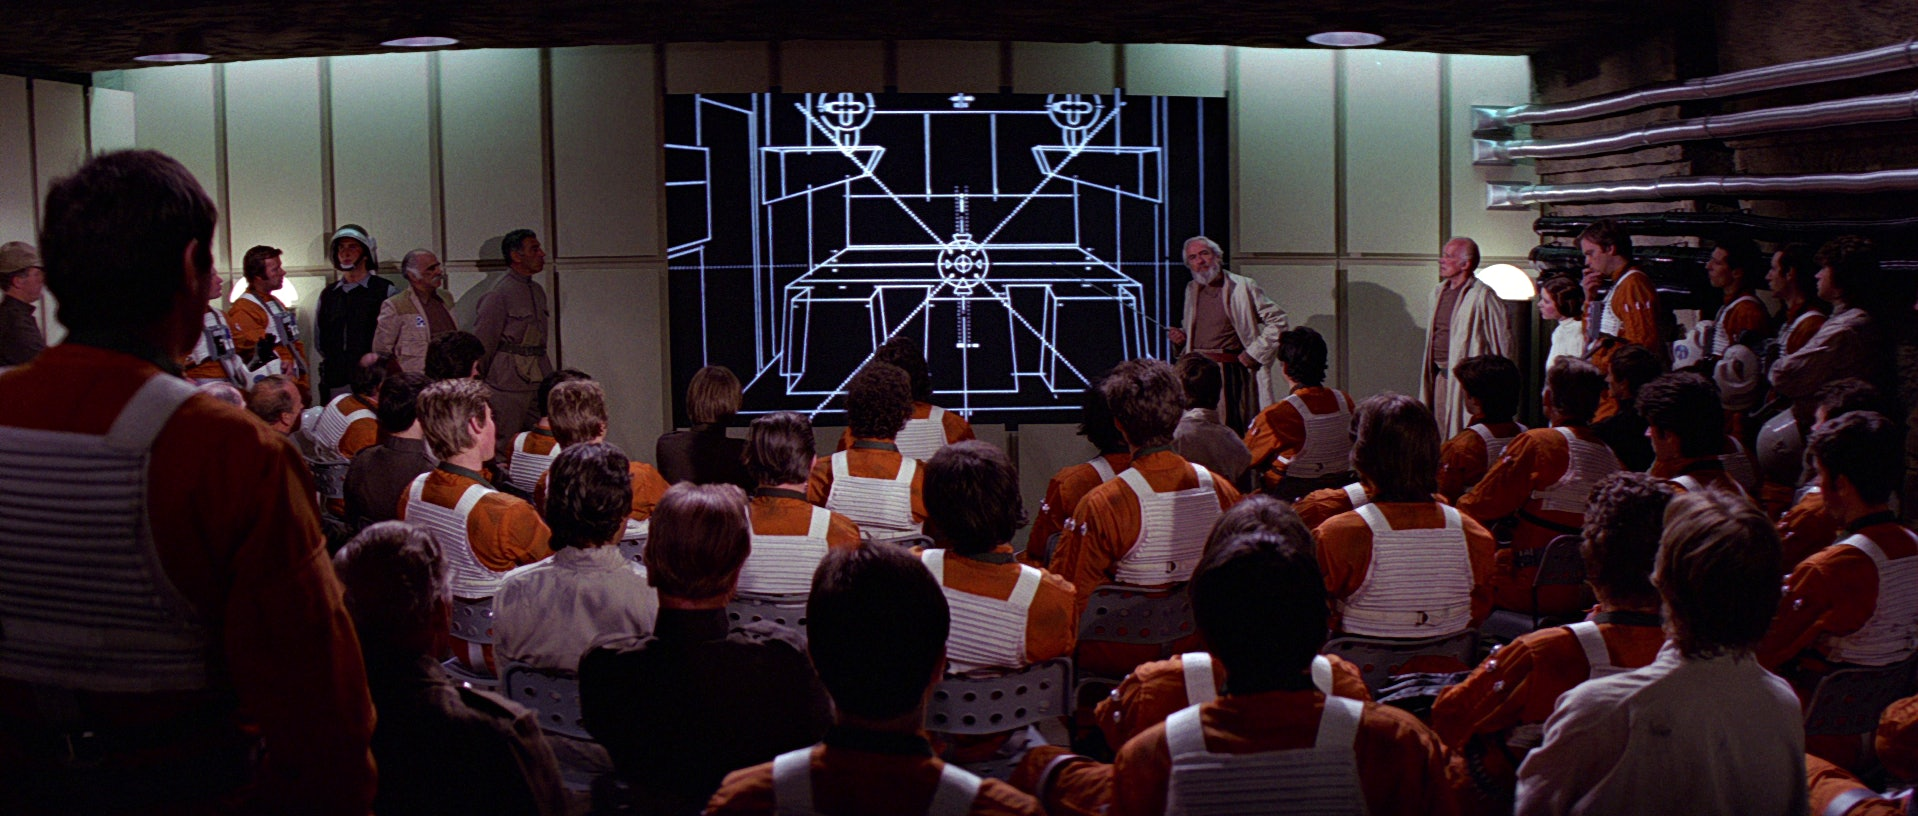 The Death Star plans reveal a design flaw in 1977